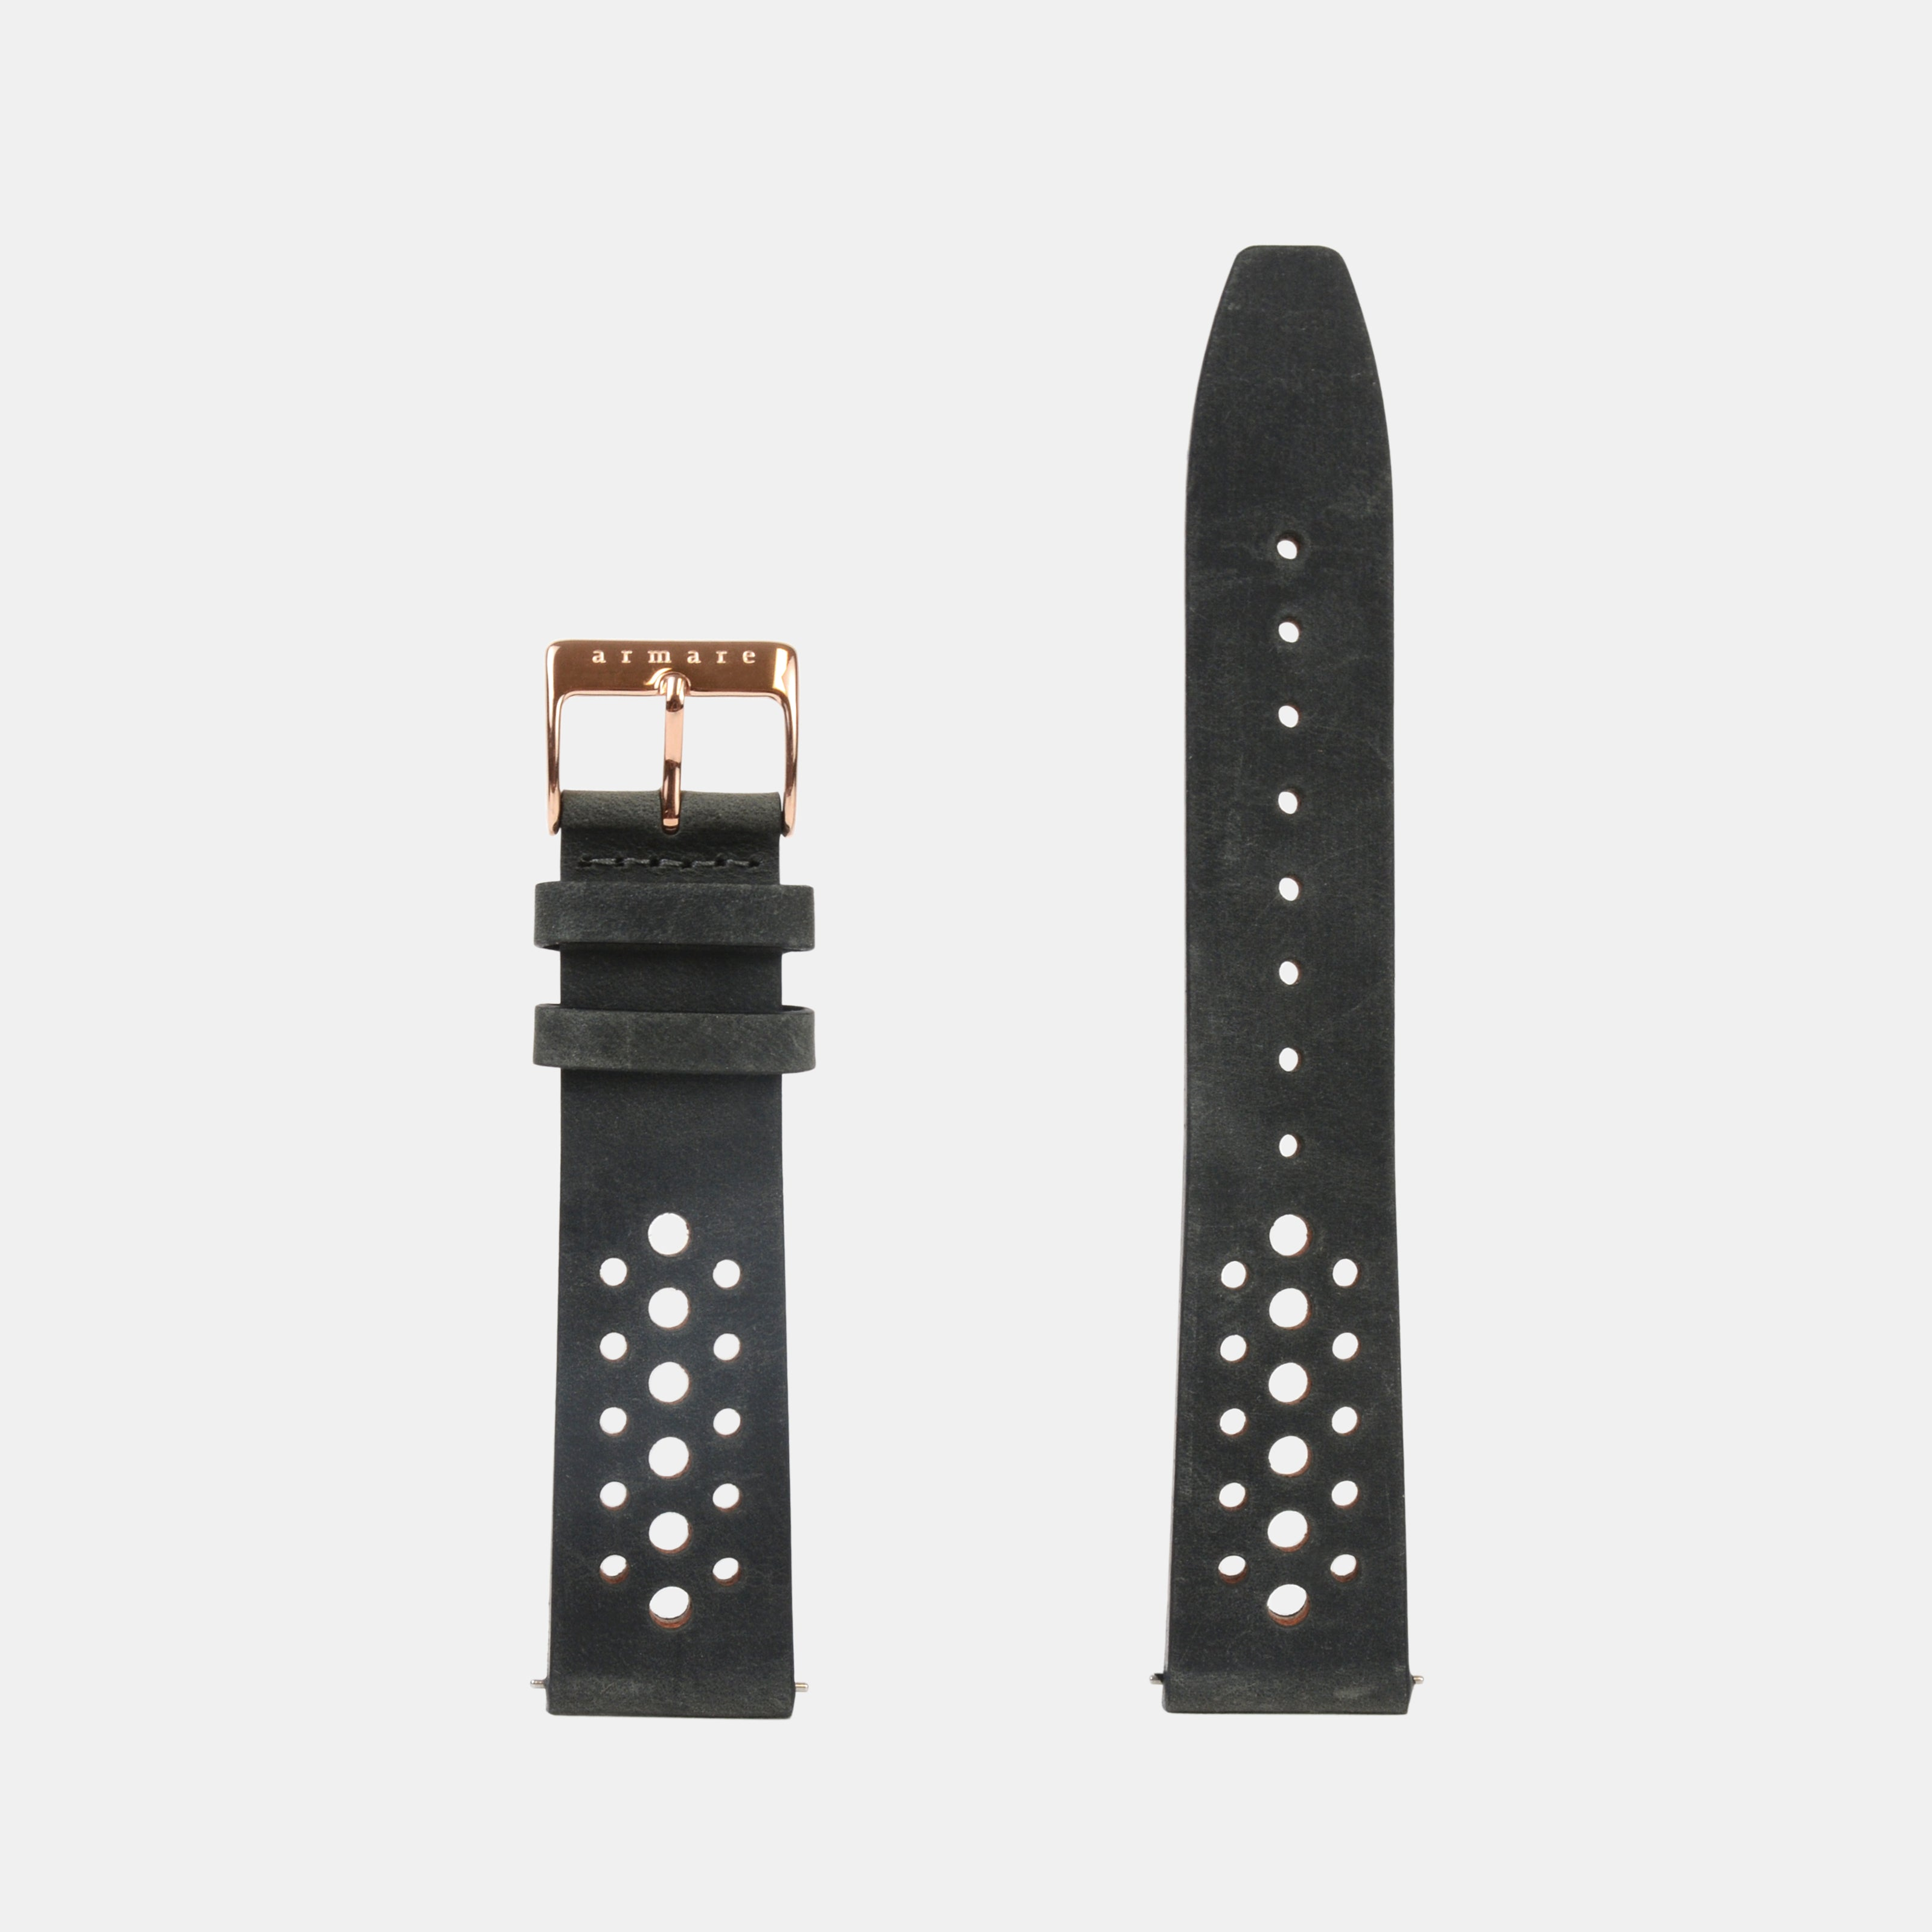 armare-watches-carbone-leather-watchband-rosegold